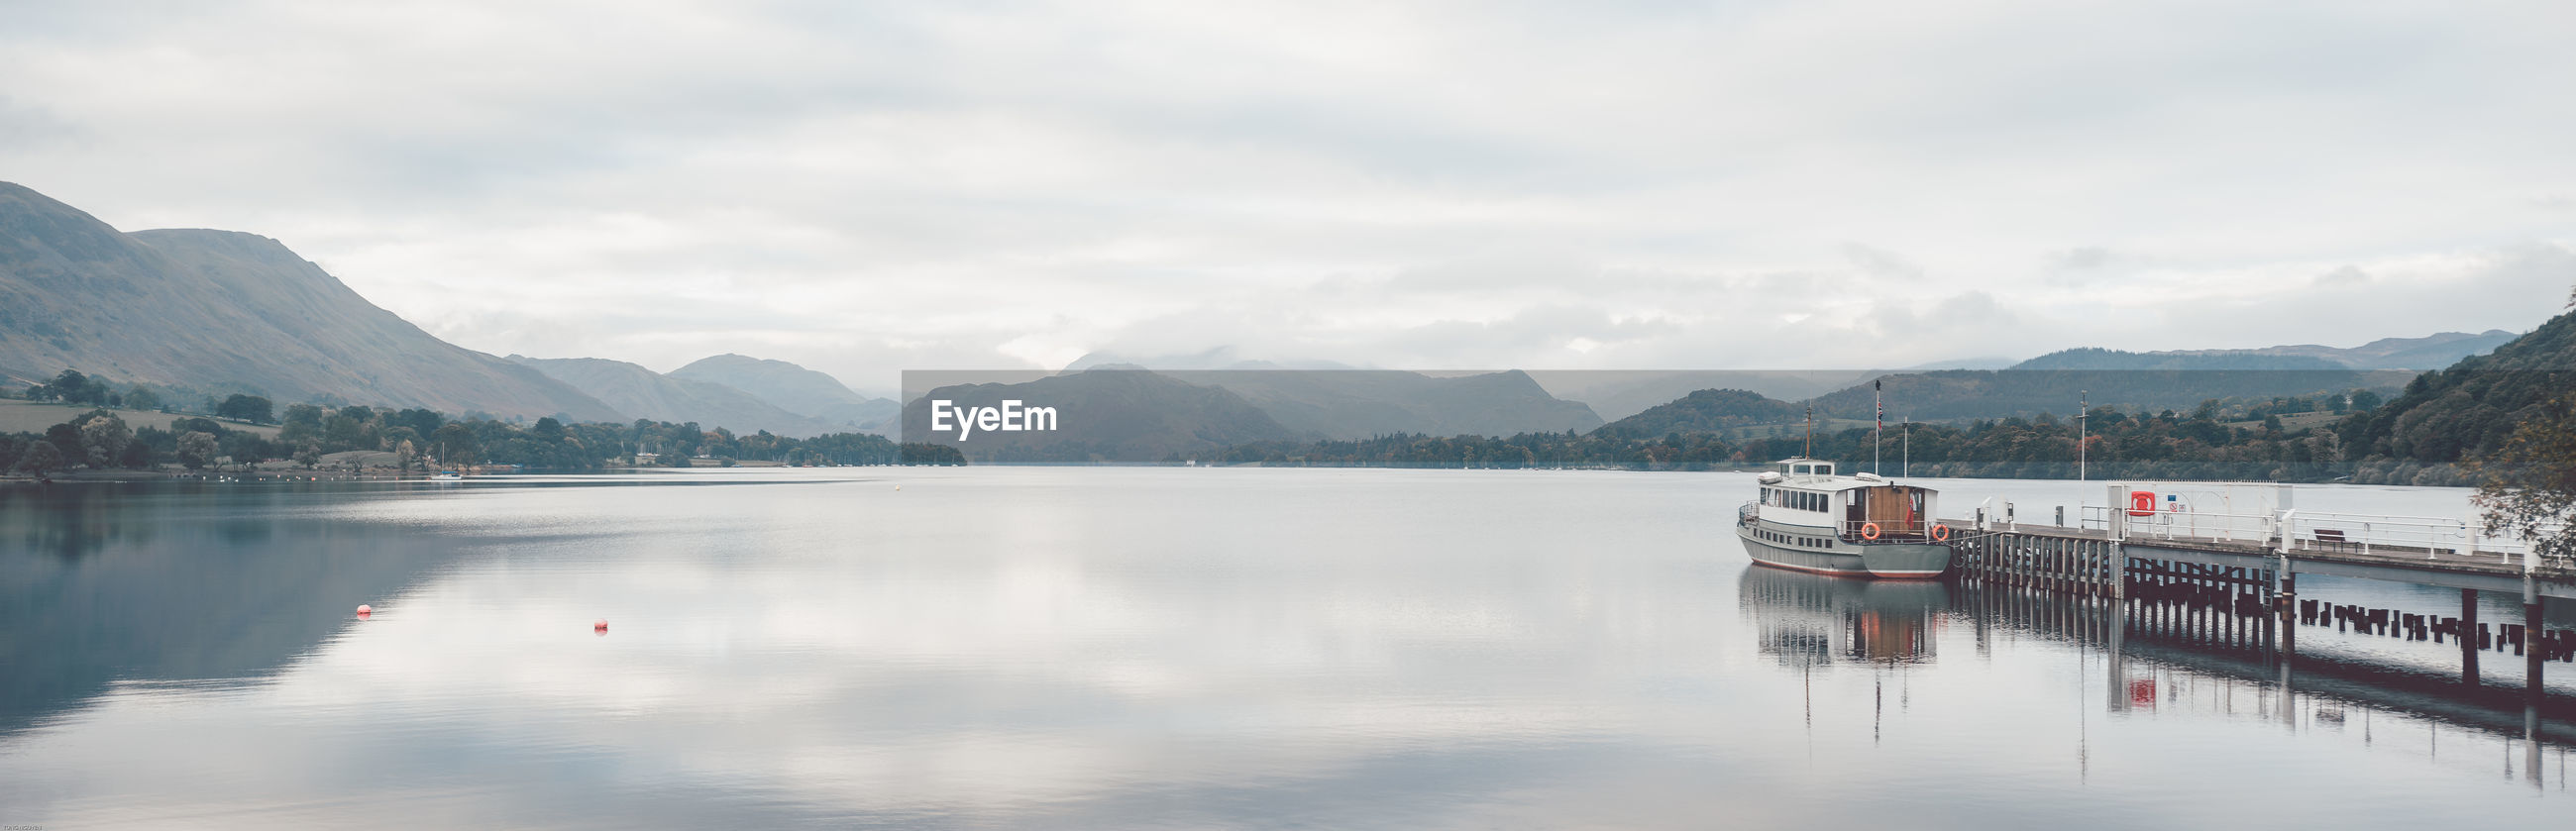 SCENIC VIEW OF LAKE WITH MOUNTAINS AGAINST SKY